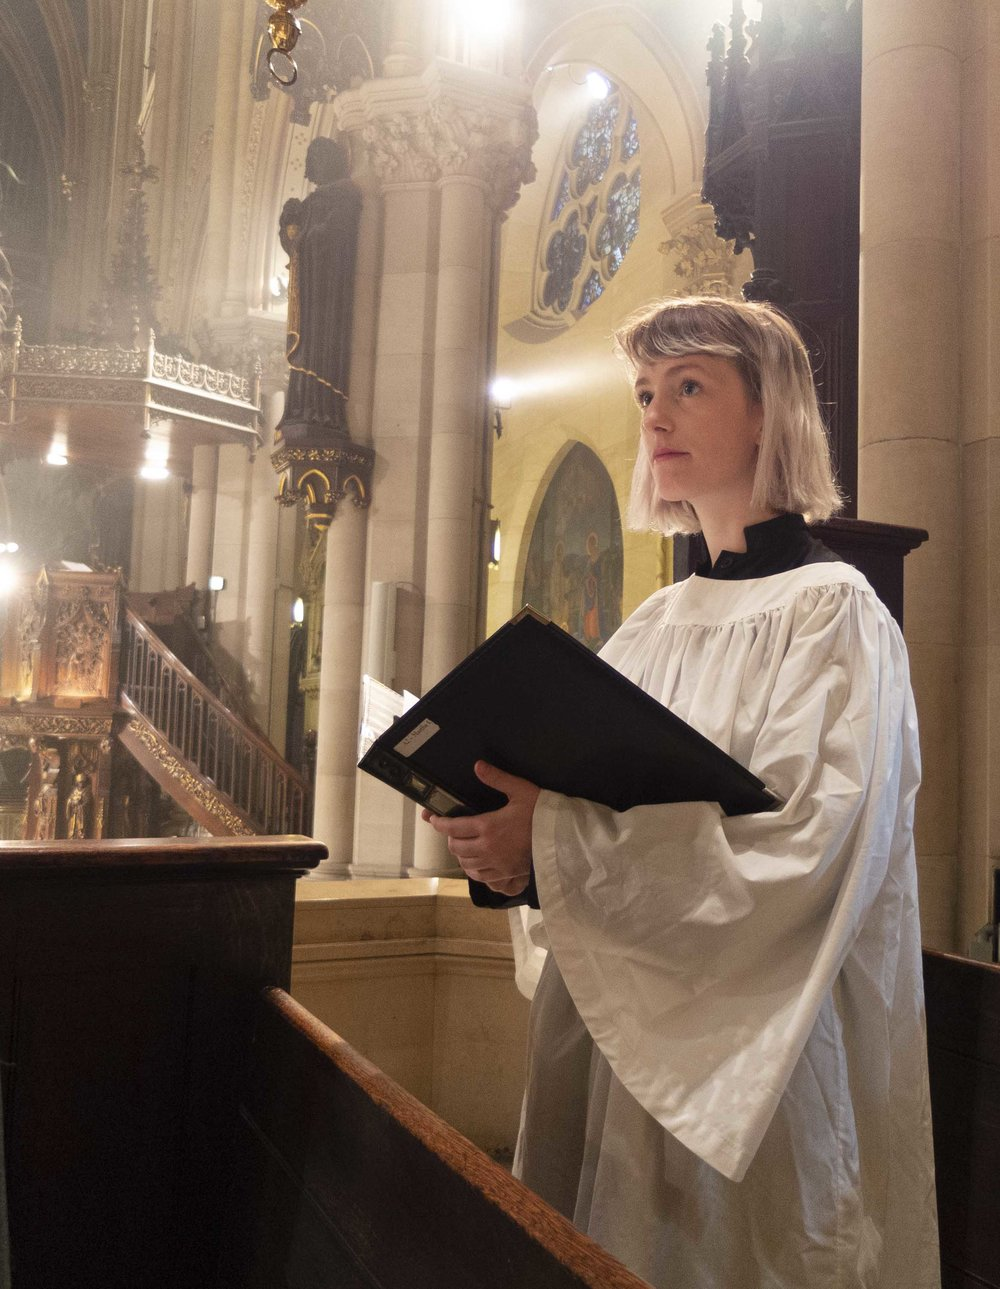 Charlotte Mundy was the cantor at the Solemn Mass on Sunday, June 10.  Photo by Sister Monica Clare, CSJB